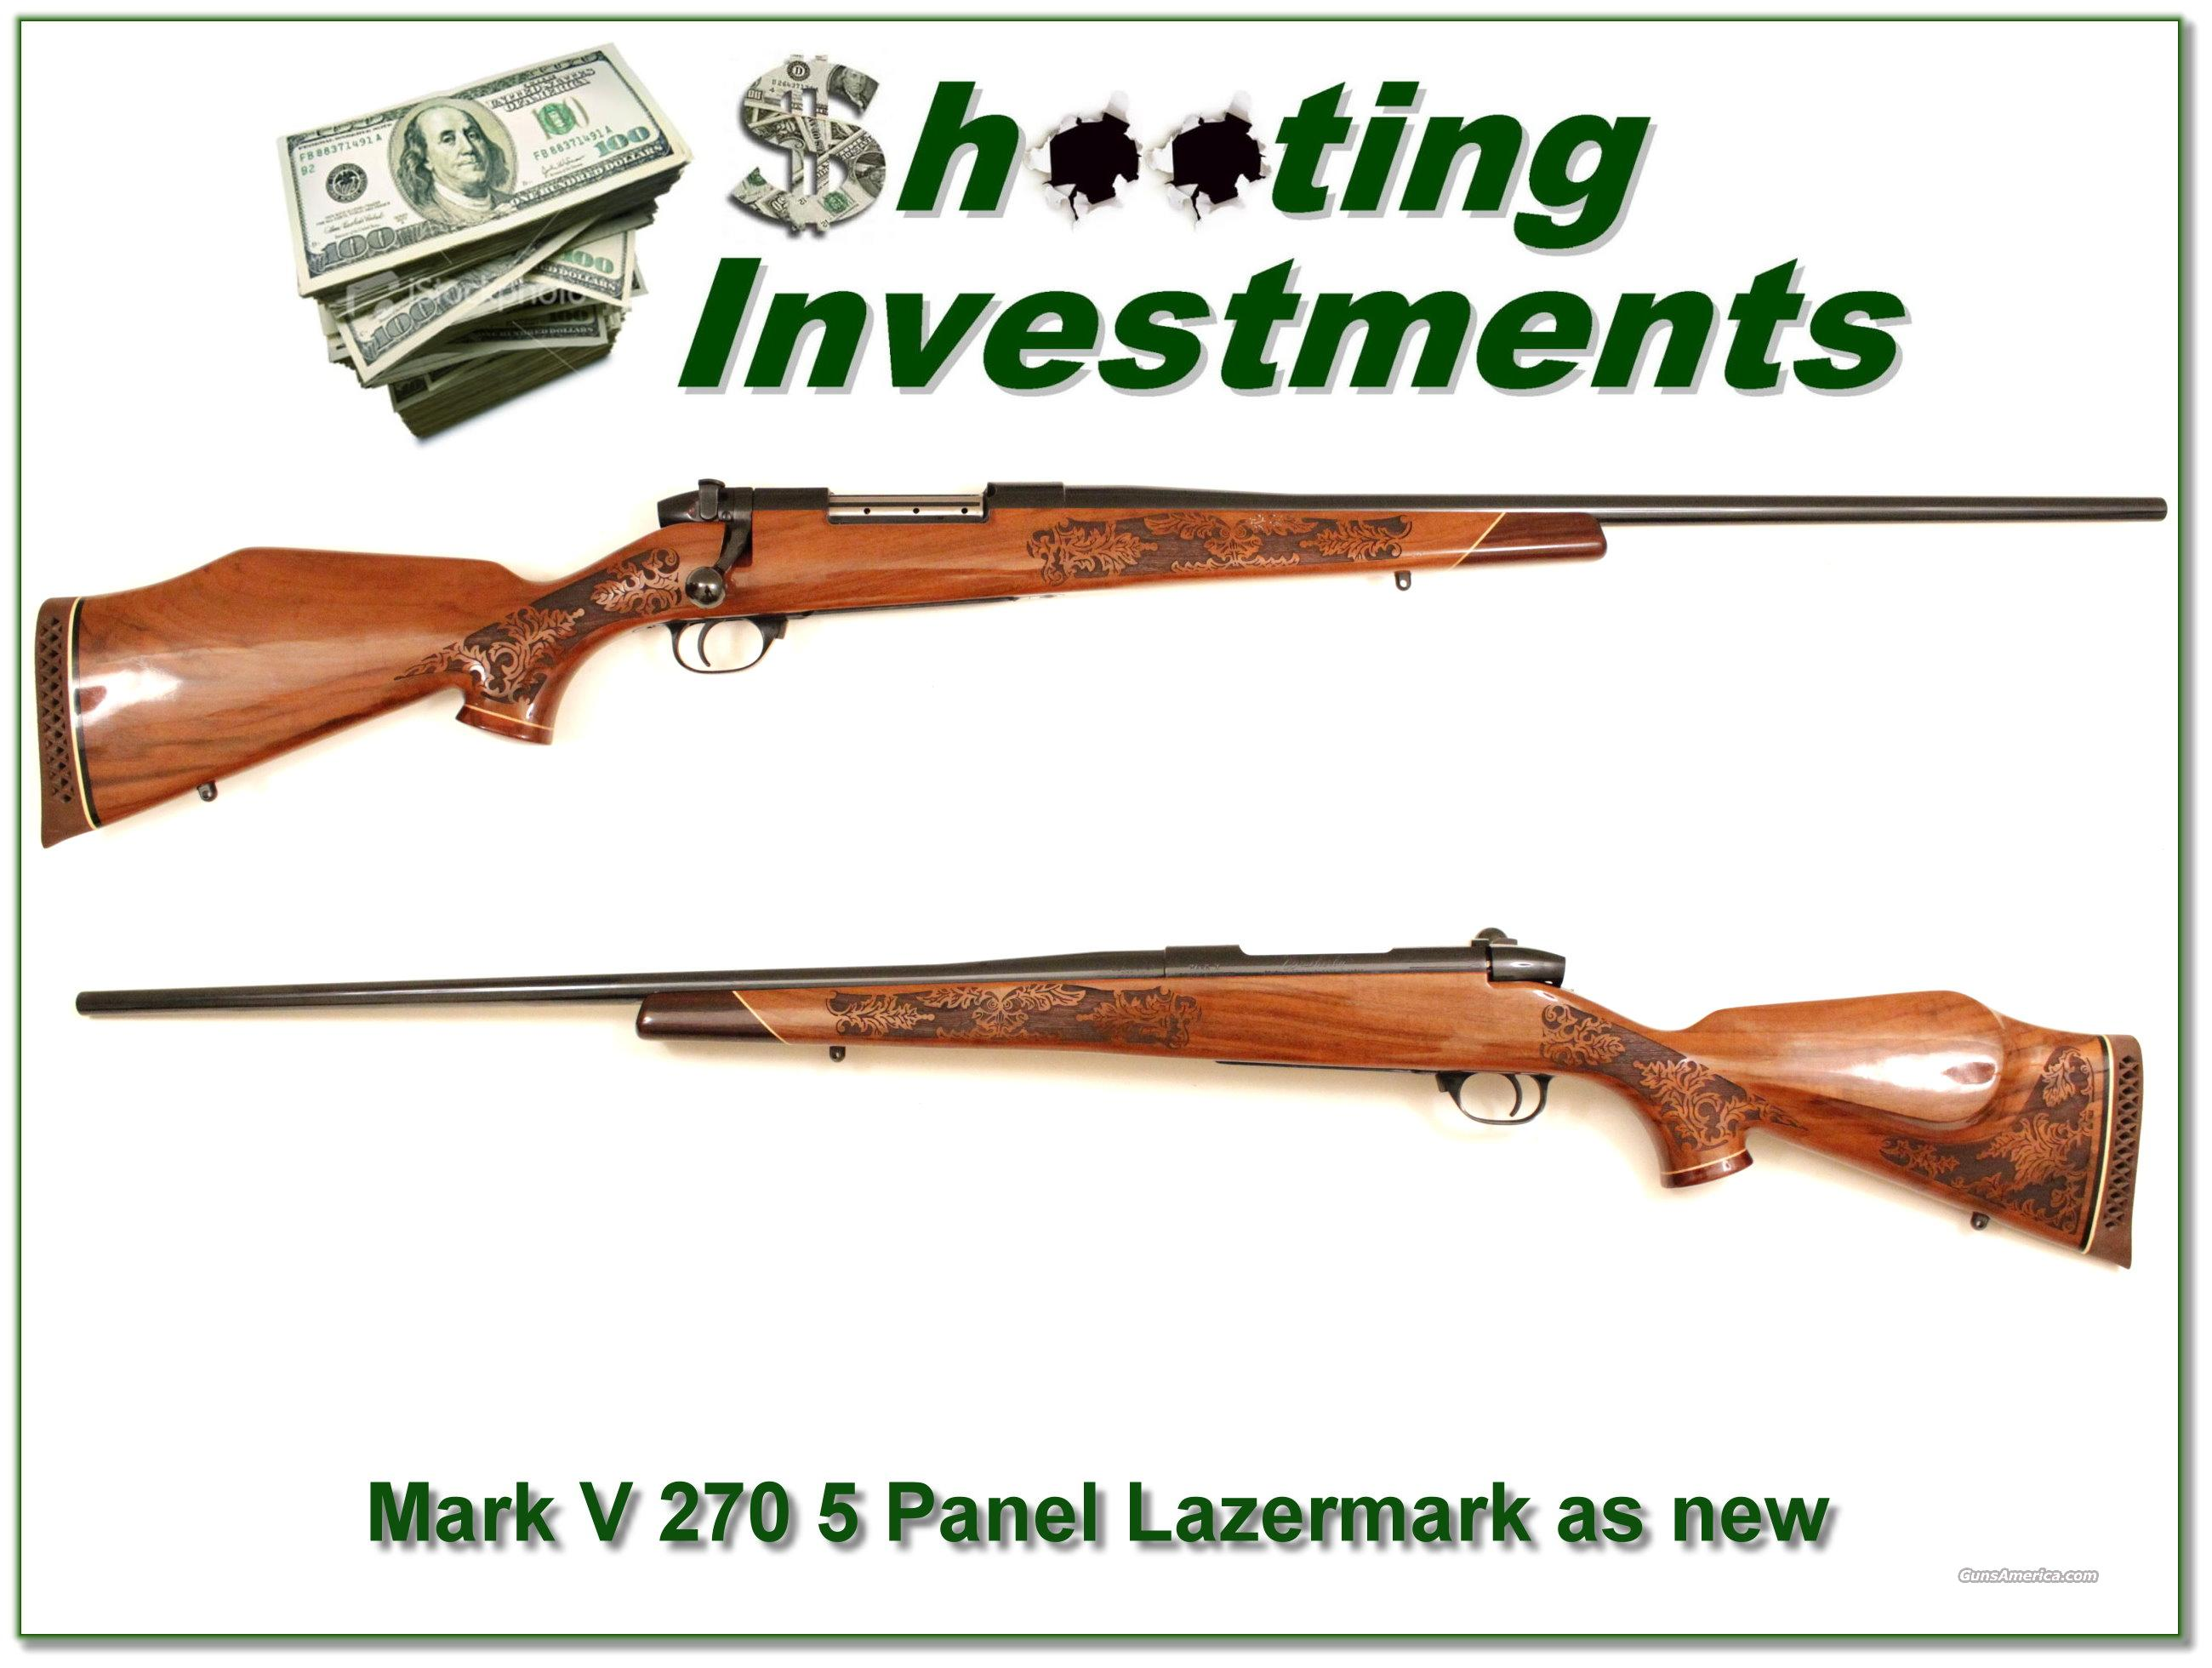 Weatherby Mark V 270 Lazermark 5 Panel Mint  Guns > Rifles > Weatherby Rifles > Sporting